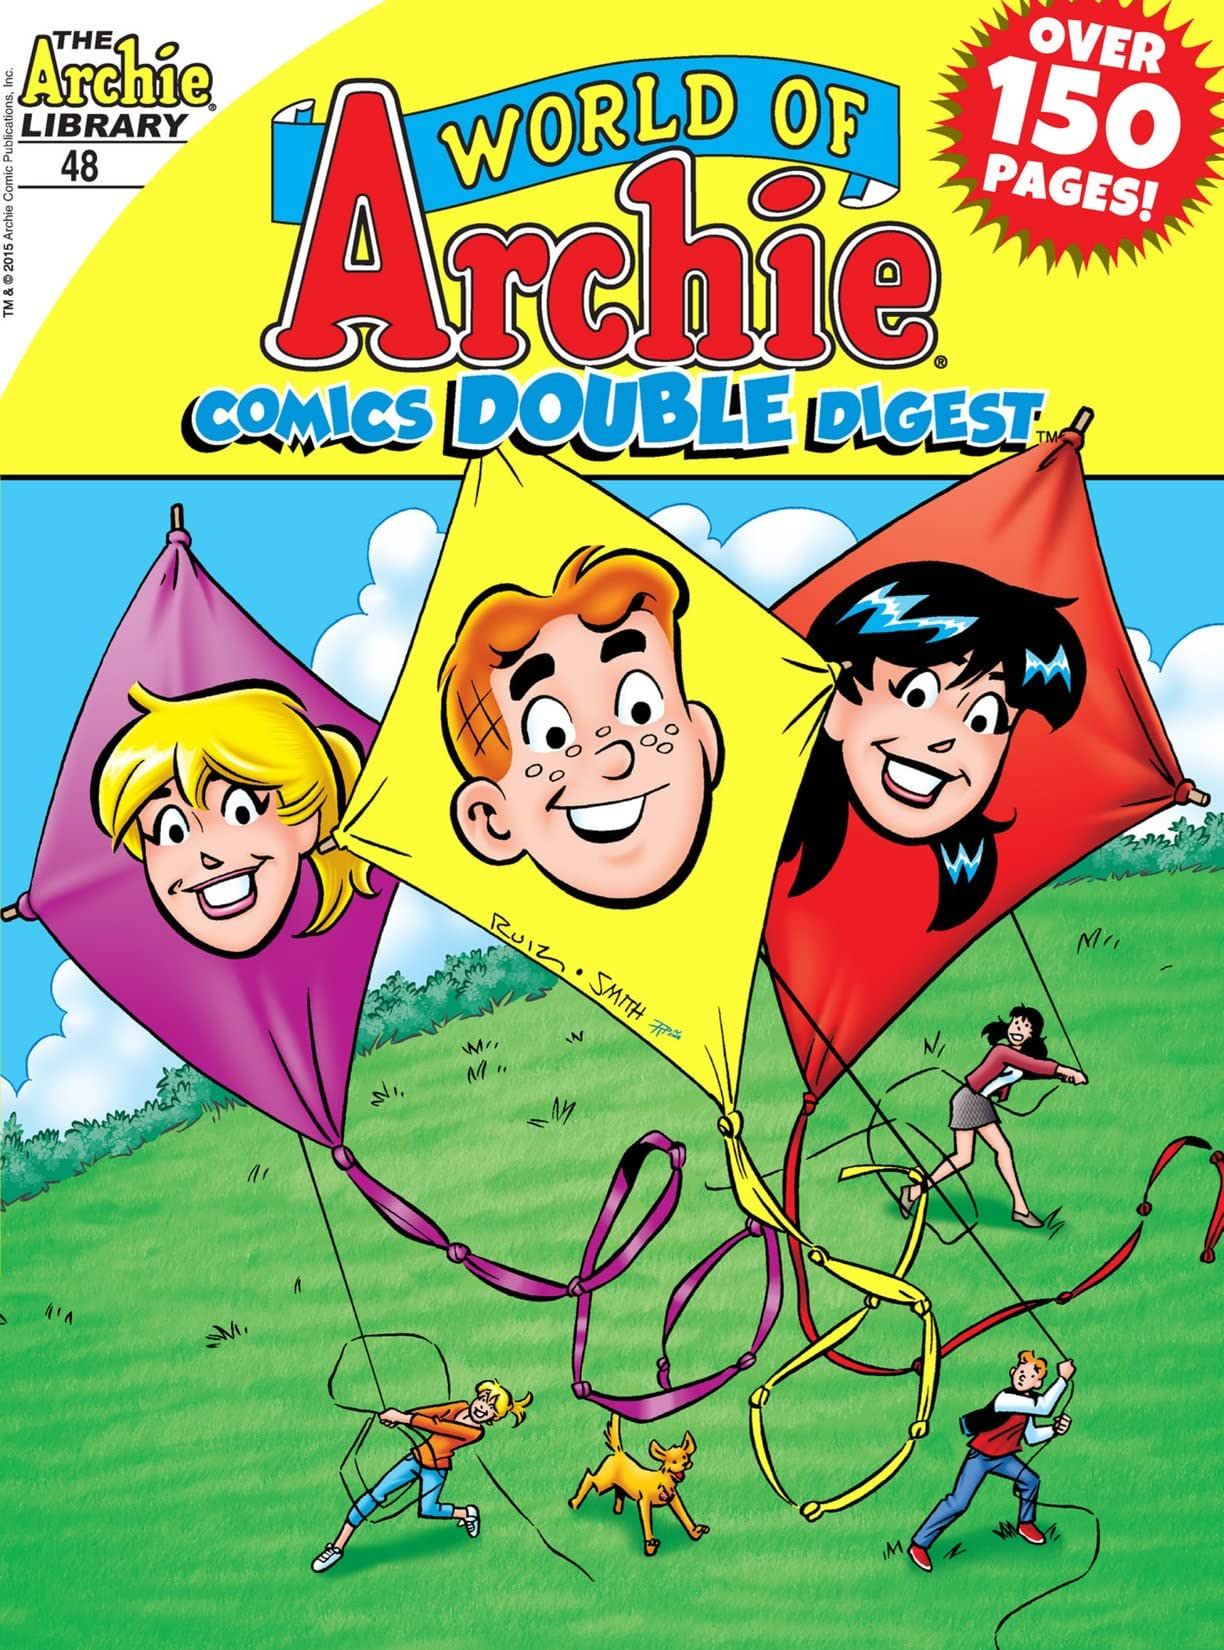 World of Archie Comics Double Digest #48